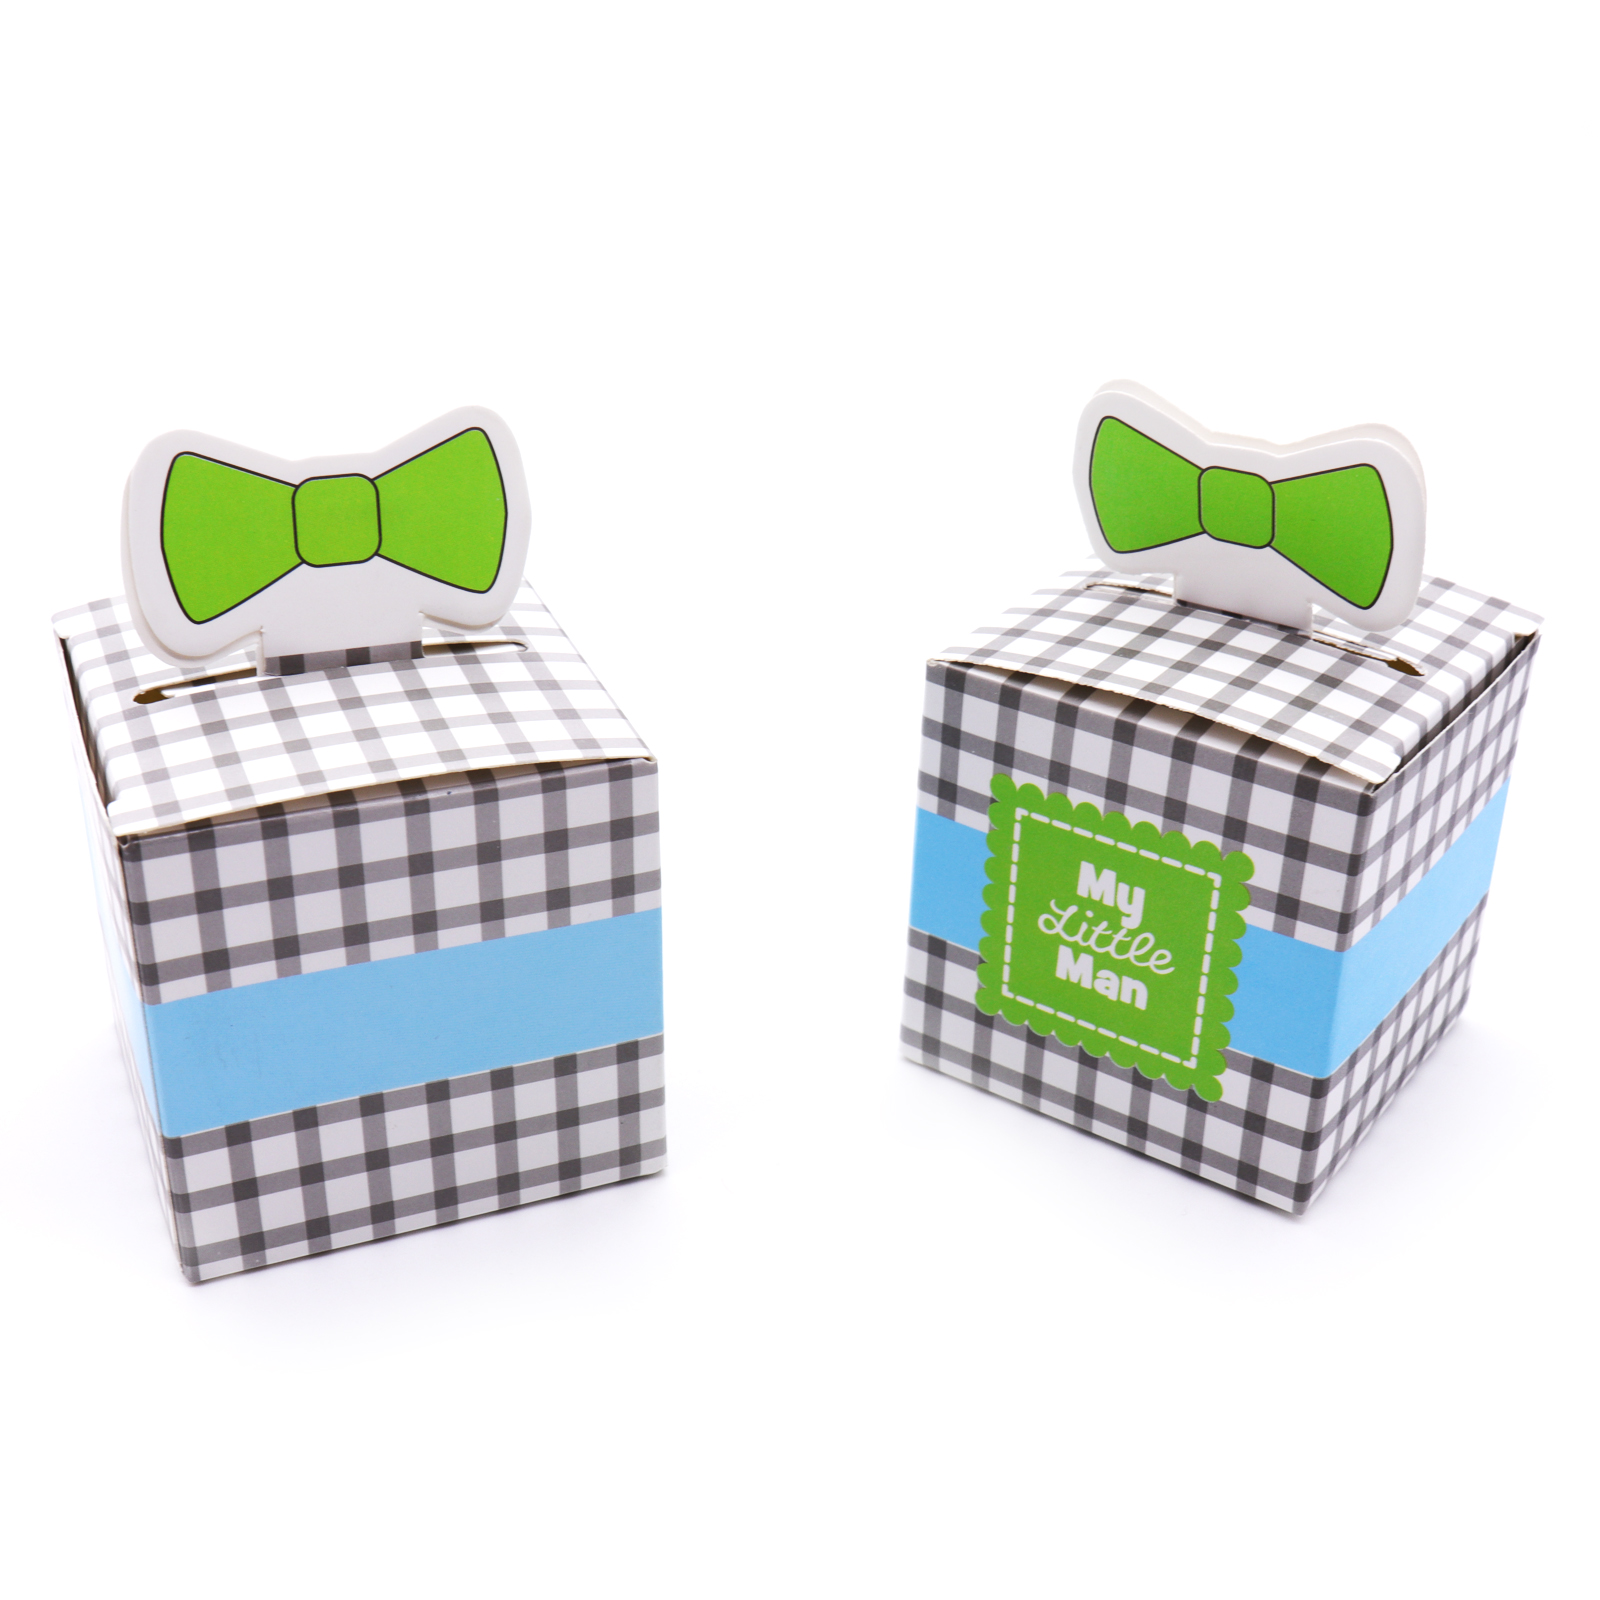 50pcs New Sailing Candy Box Baby on Board Mustache Sail Celebration Baby Shower Favor Boxes Gift Box Baptism Party Souvenirs